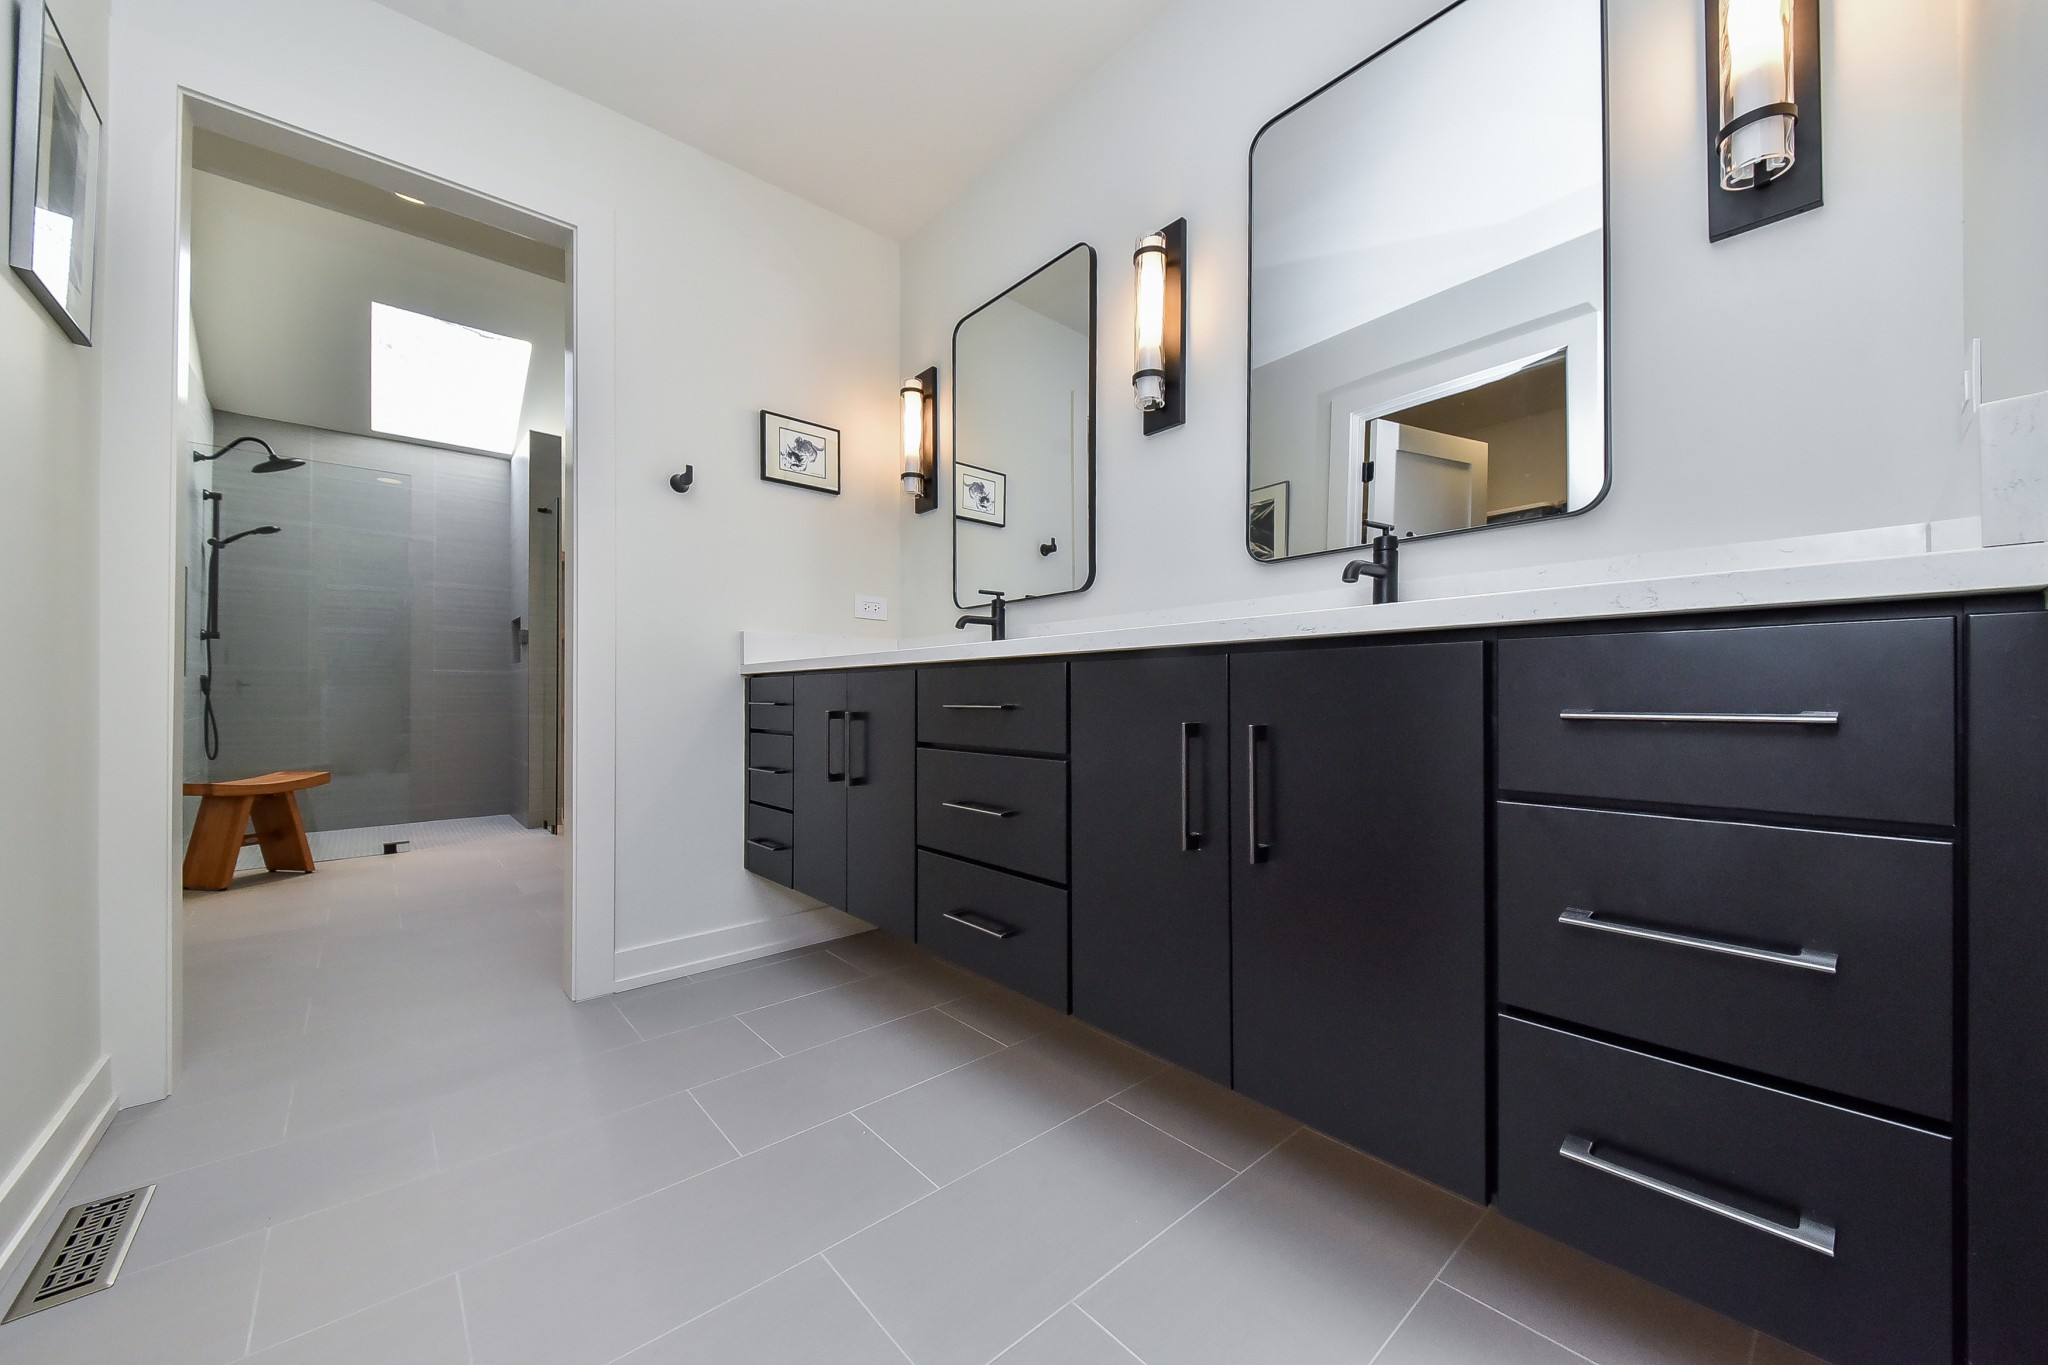 14 Bathroom Design Trends For 2020 Home Remodeling